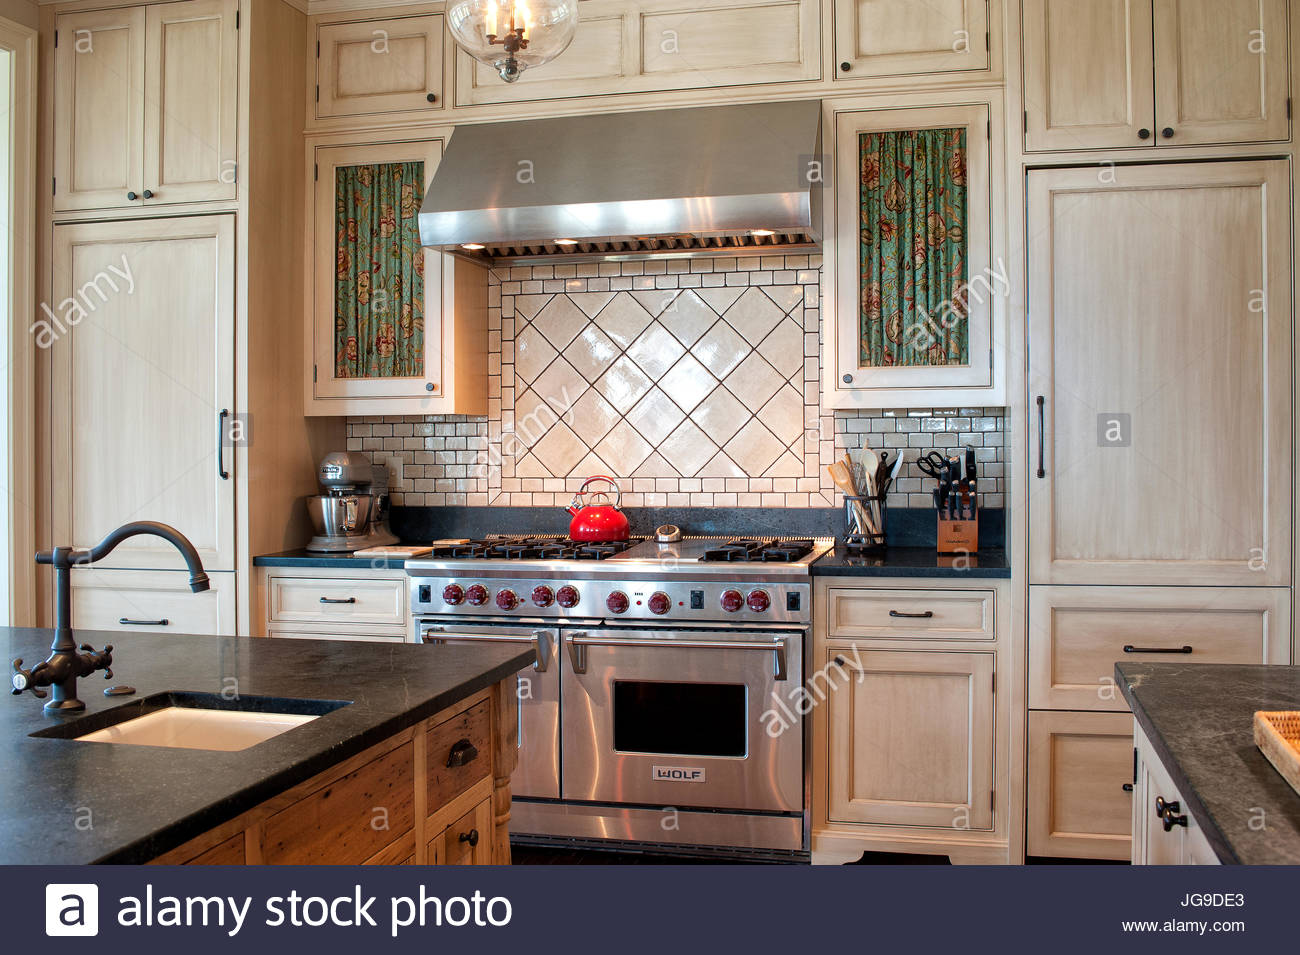 Country kitchen tile back splash wolf double oven range red stock country kitchen tile back splash wolf double oven range red kettle custom cabinetry soap stone counter dailygadgetfo Gallery